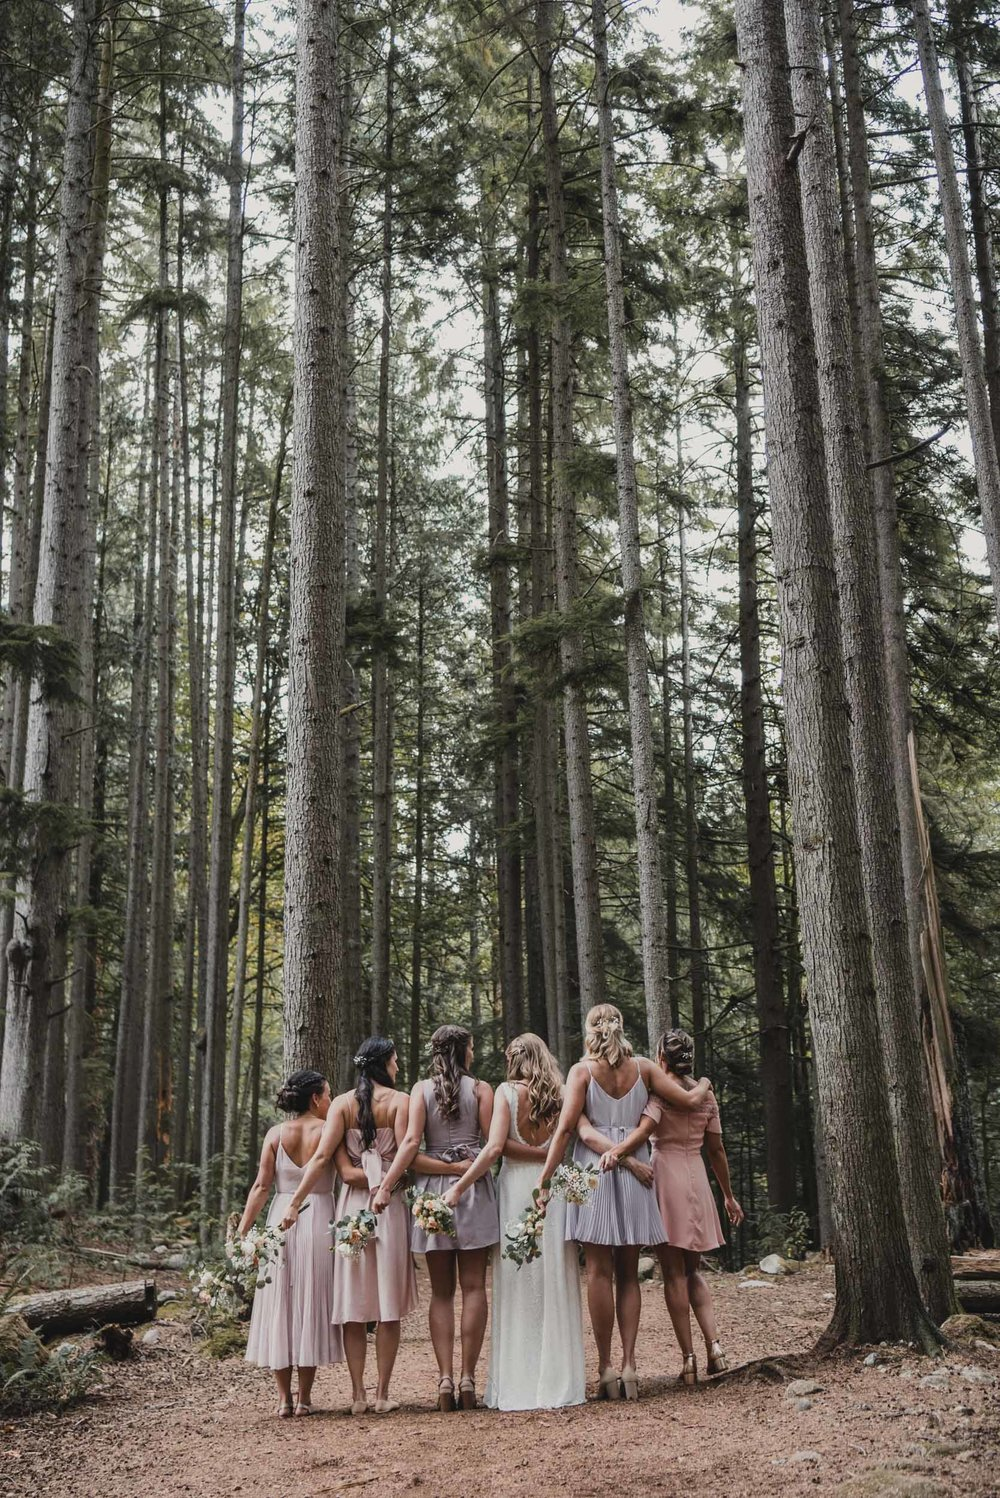 Bride and bridesmaids in forest